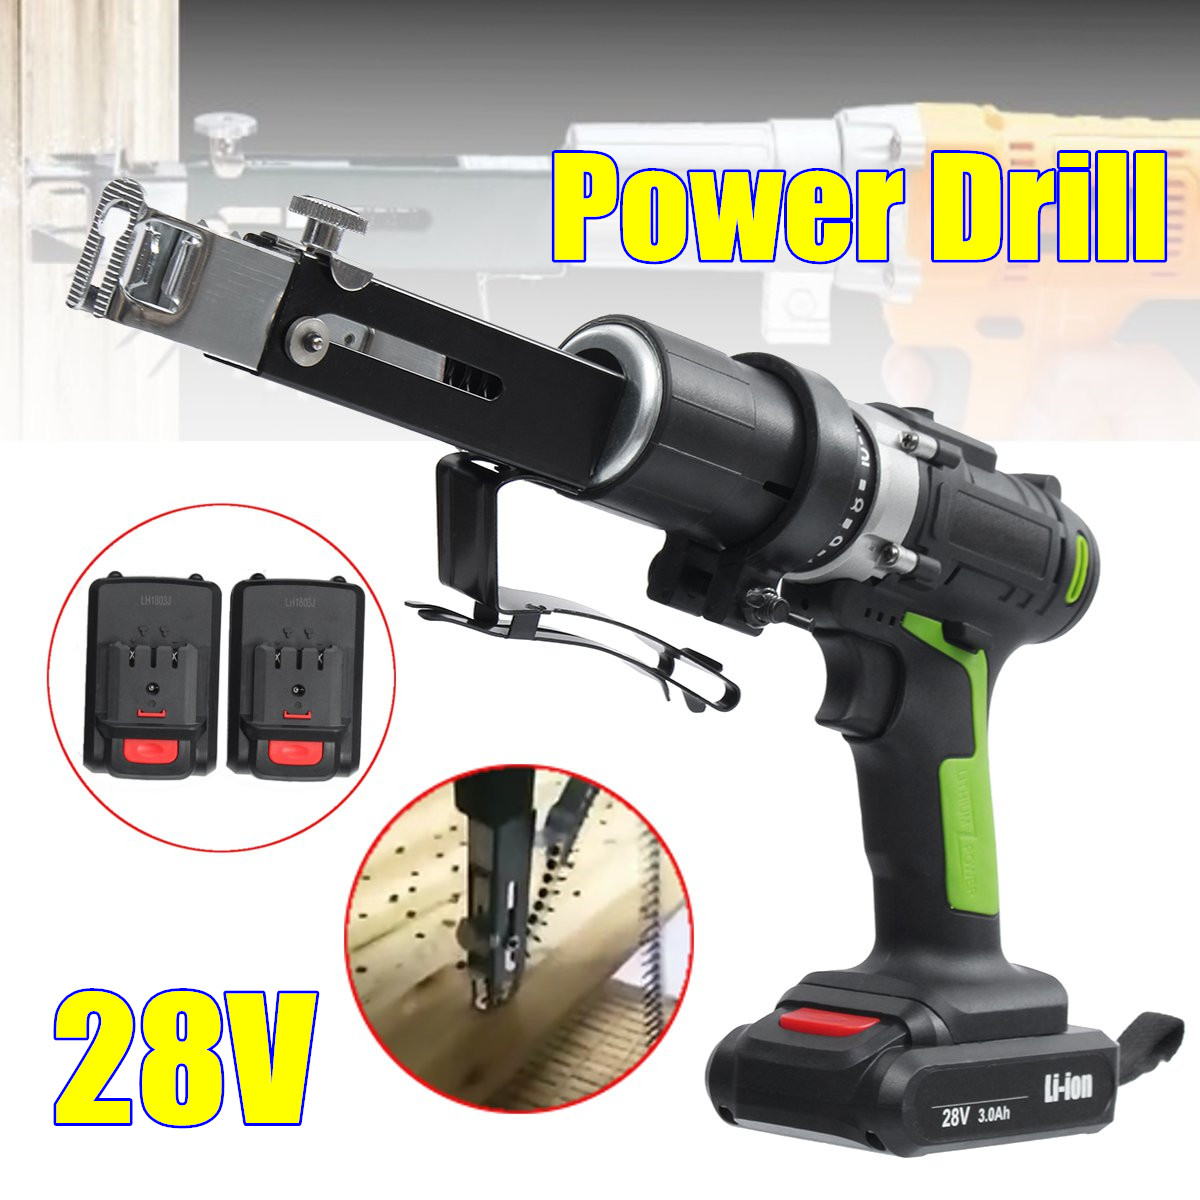 28V Max Electric Screwdriver Cordless Drill Mini Wireless Power Driver DC Lithium-Ion Battery With 2 Lithium Battery28V Max Electric Screwdriver Cordless Drill Mini Wireless Power Driver DC Lithium-Ion Battery With 2 Lithium Battery